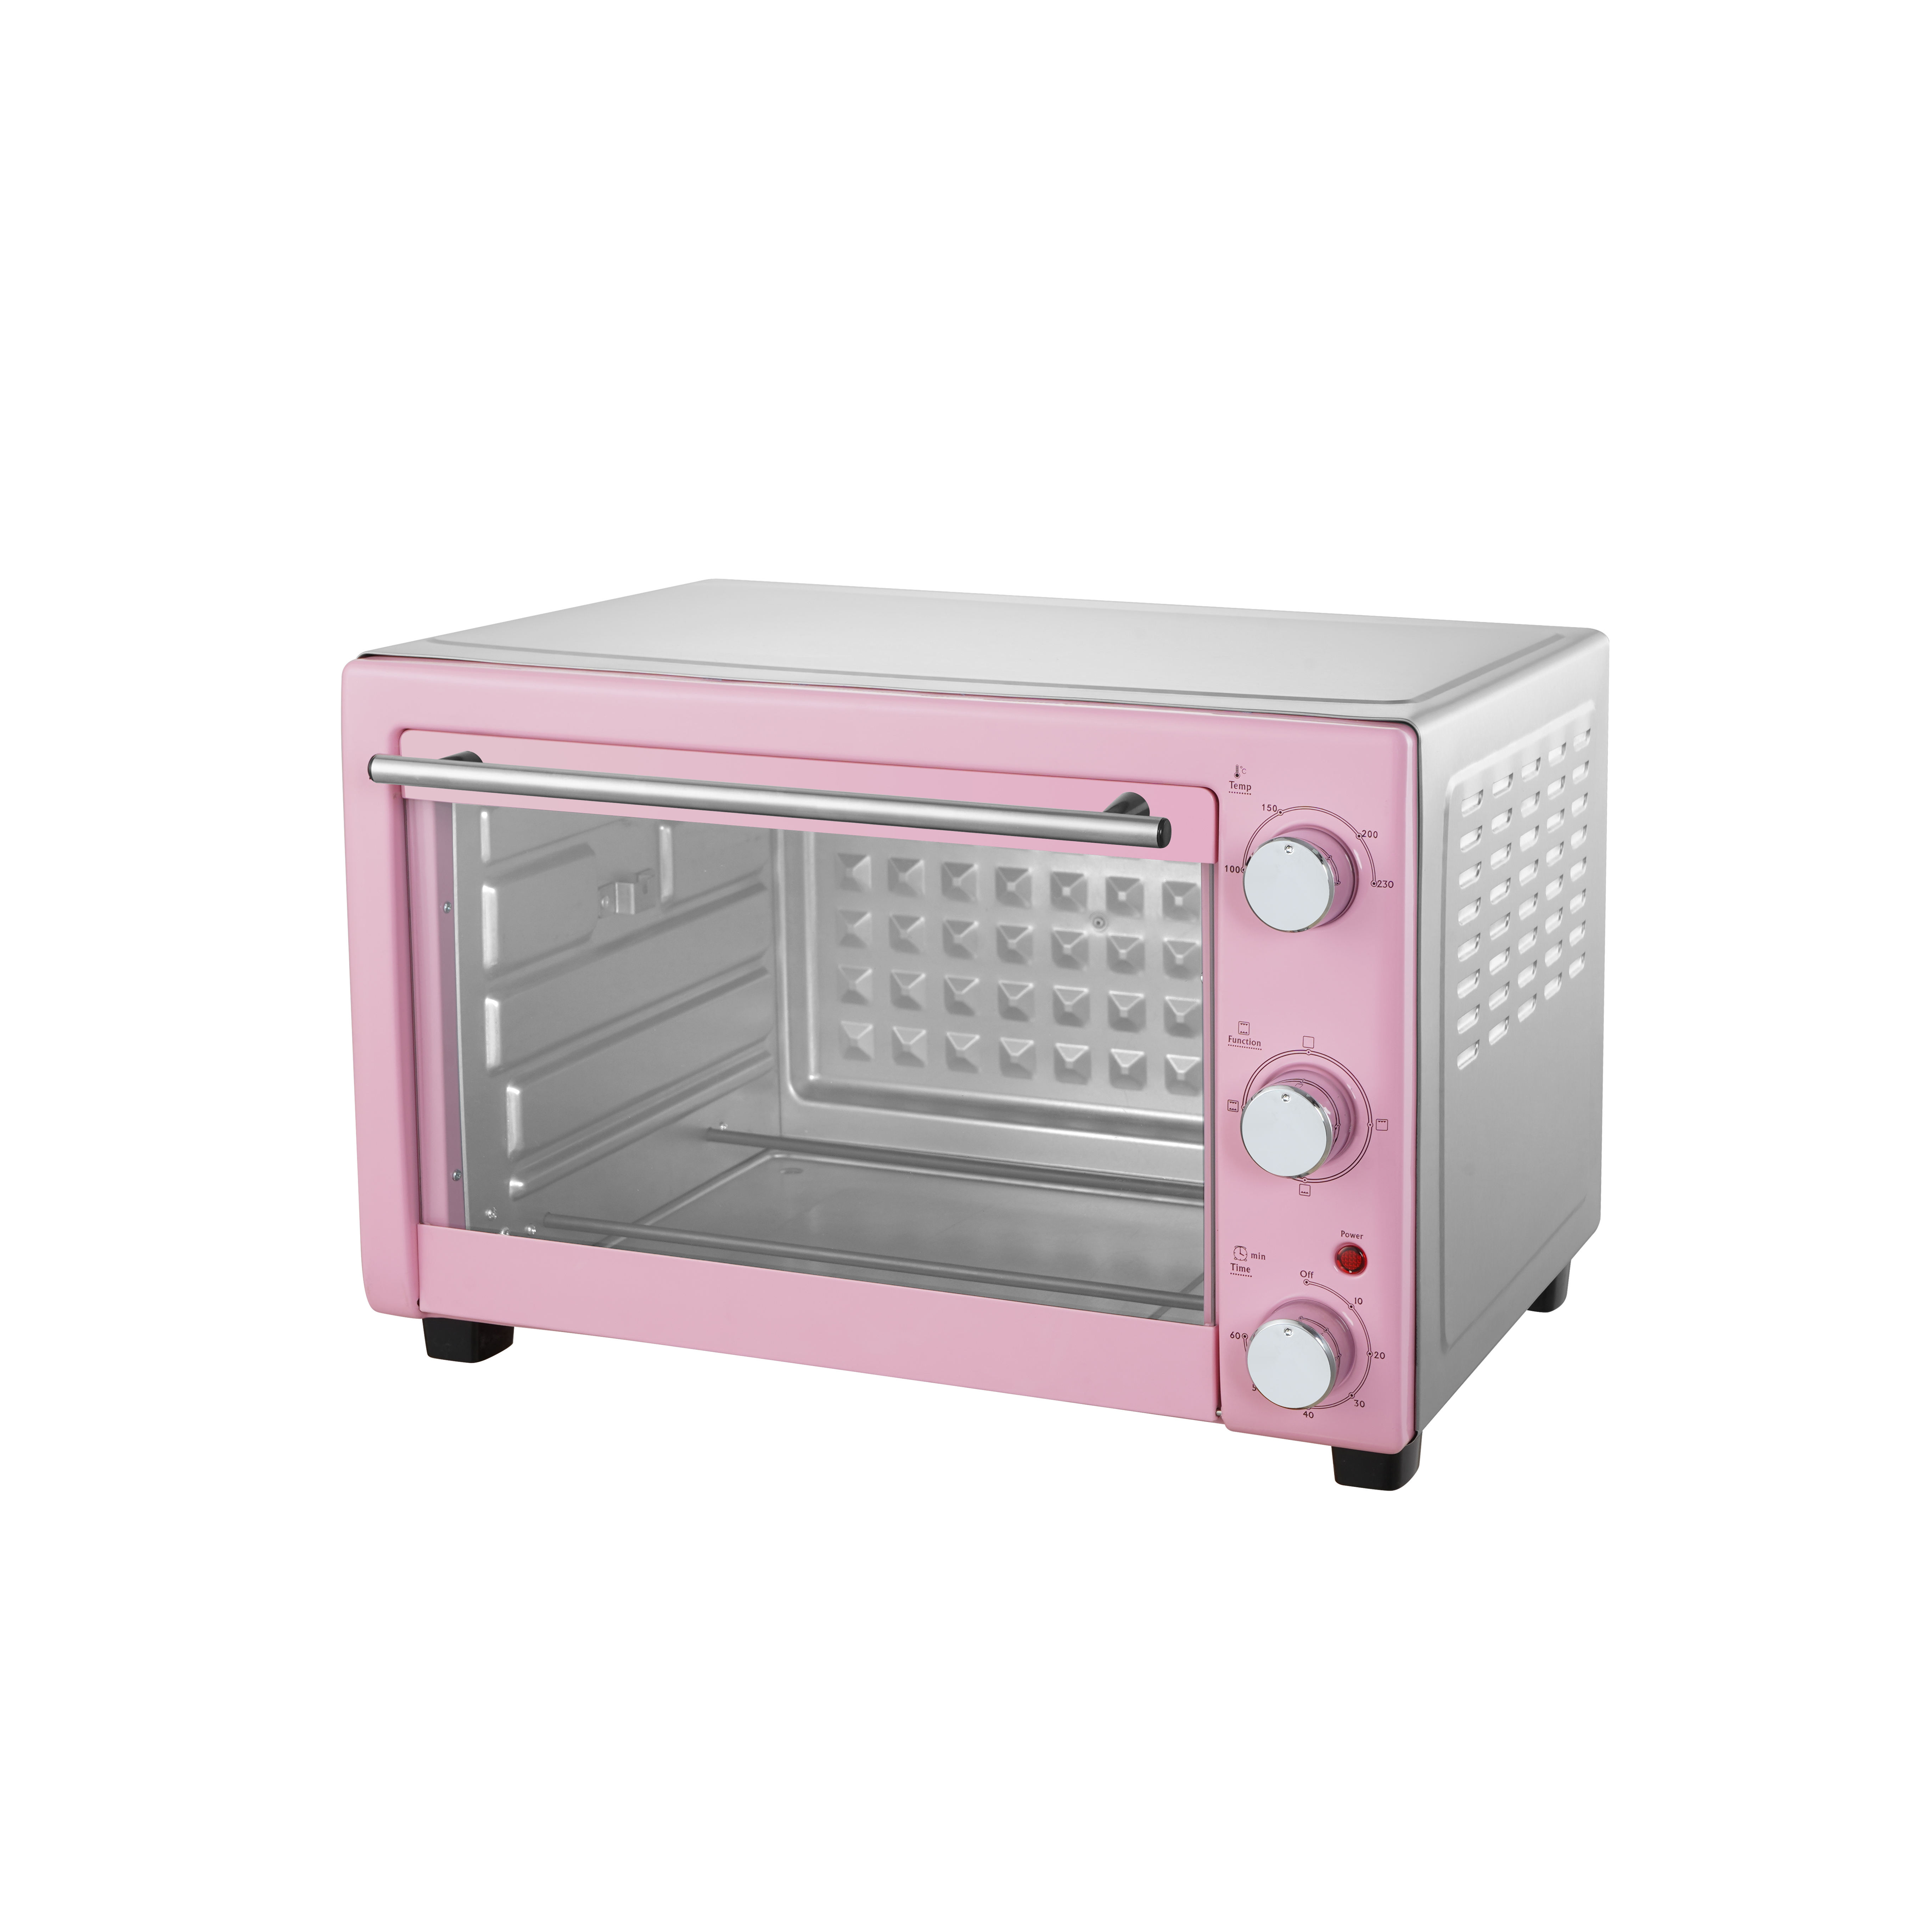 Pink color home use cooking oven electric bread oven with rotisserie hot wind 30liters